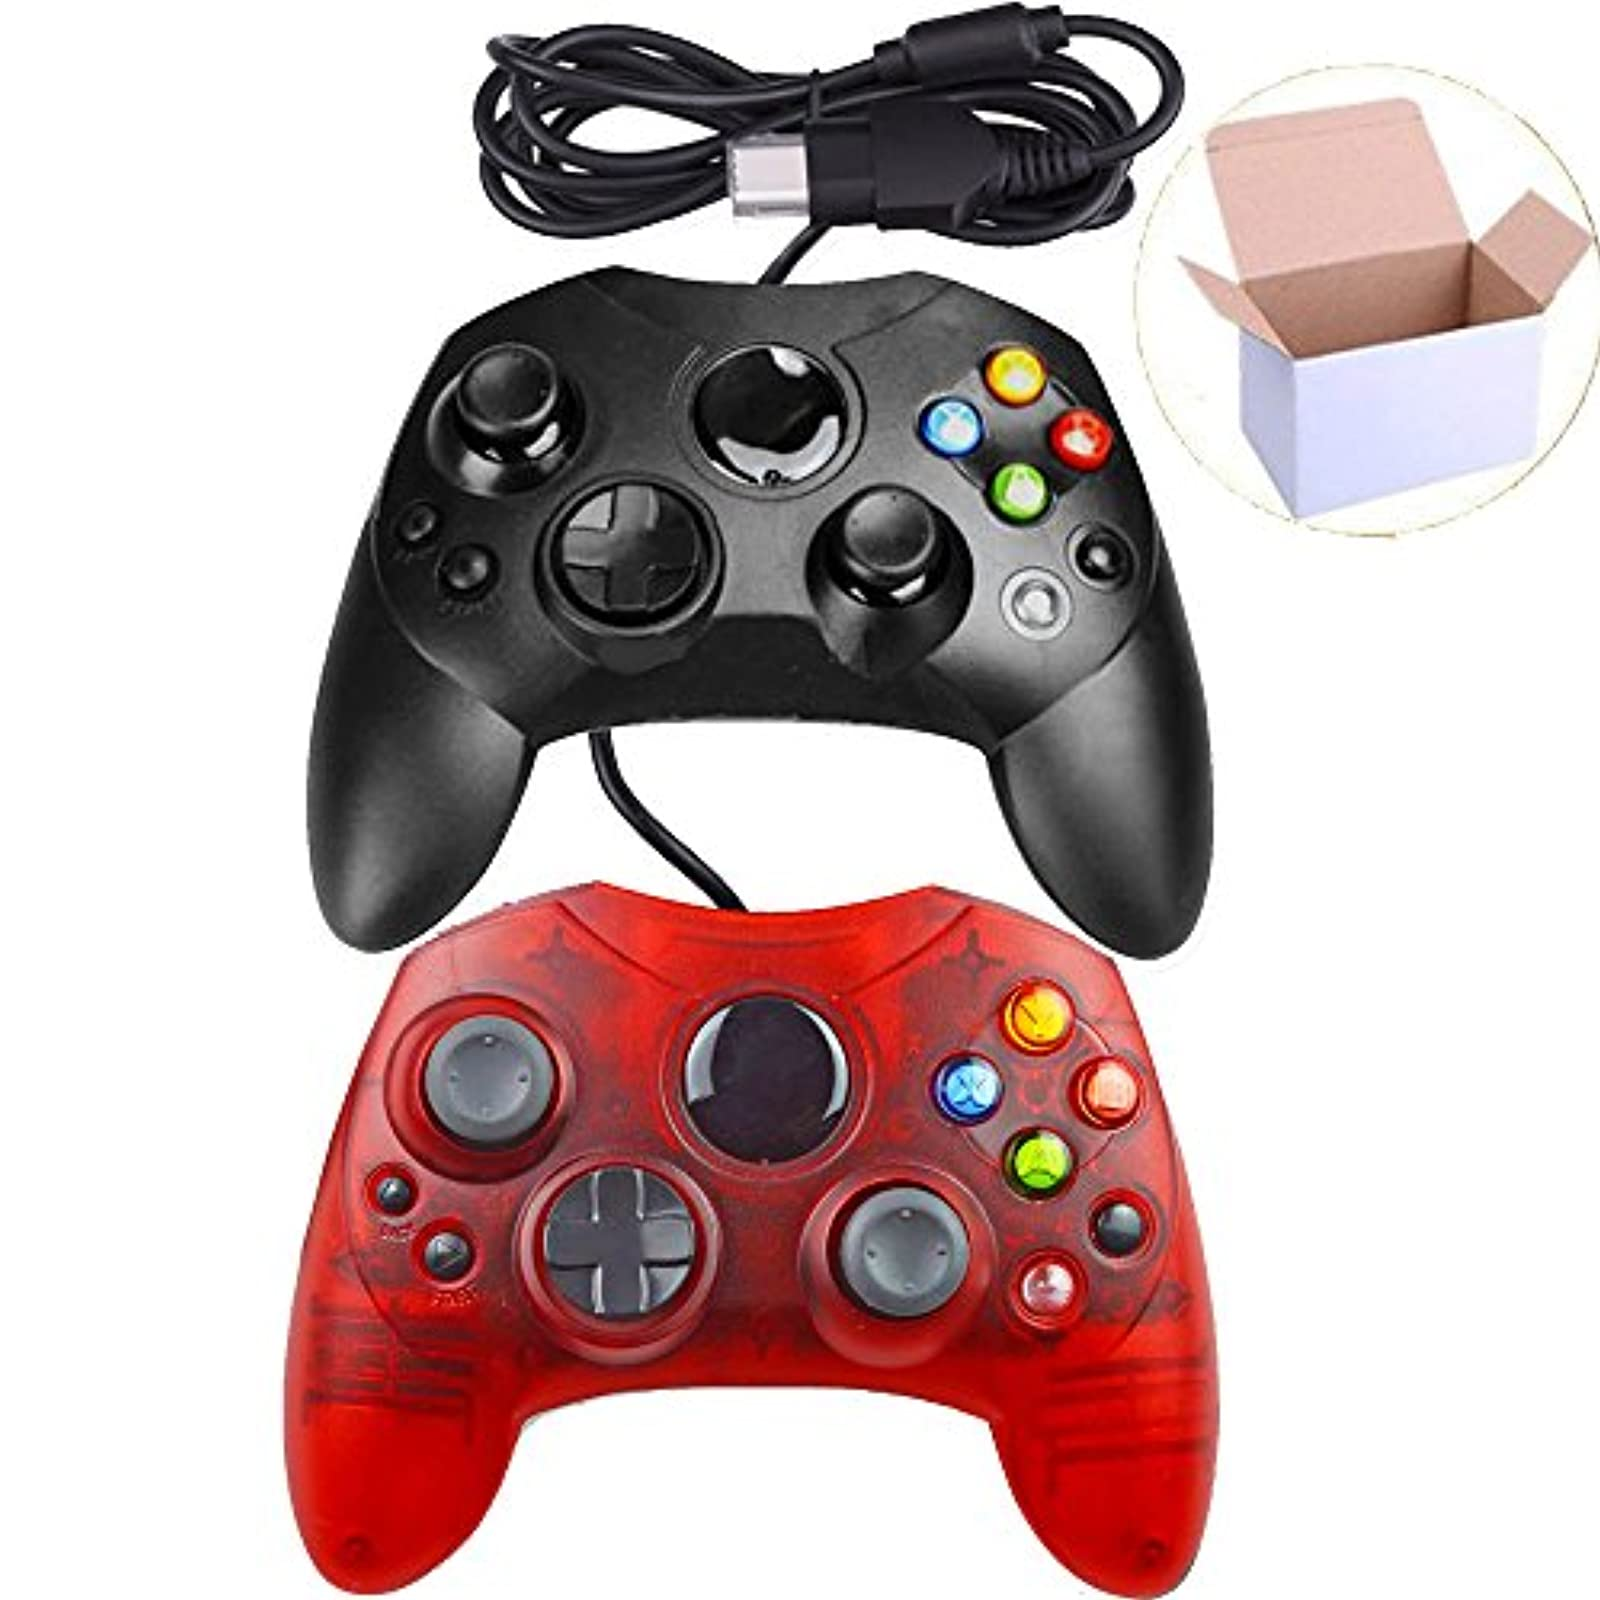 Lot Of 2 Wired Controller Gamepad Joysticks S Type Console Black And